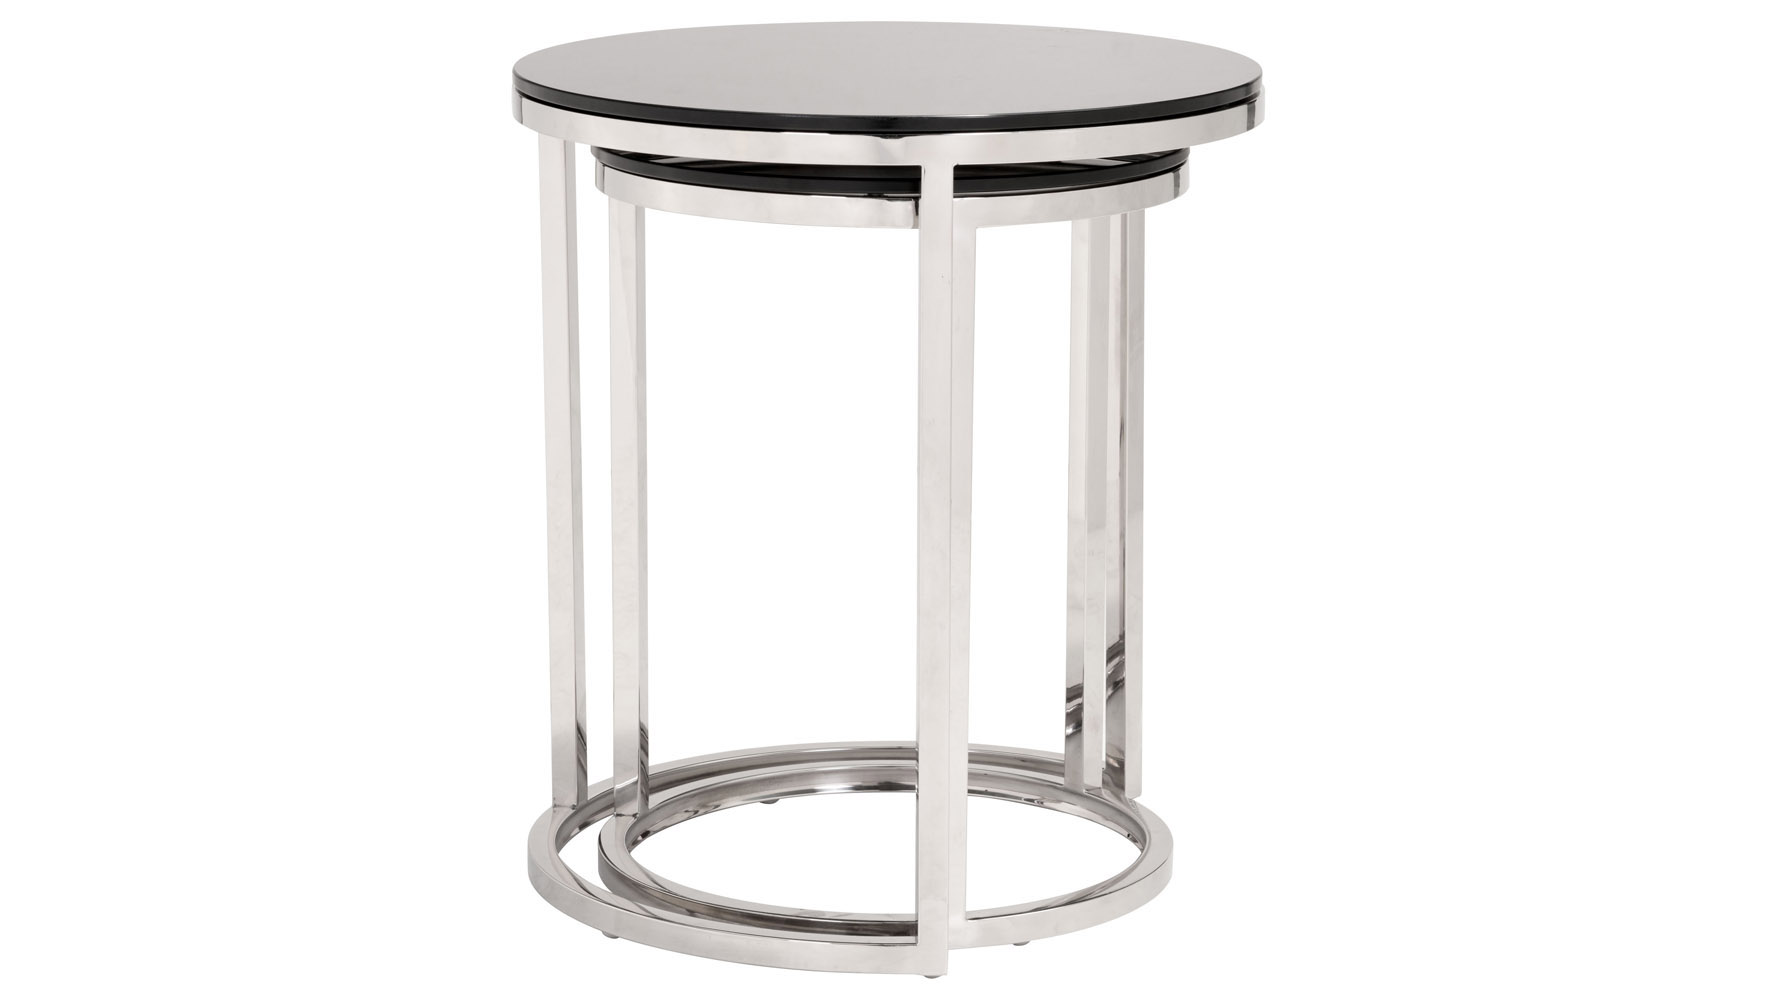 Black Glass Side Table: Zilarra Tempered Glass Side Table Set, Black & Stainless